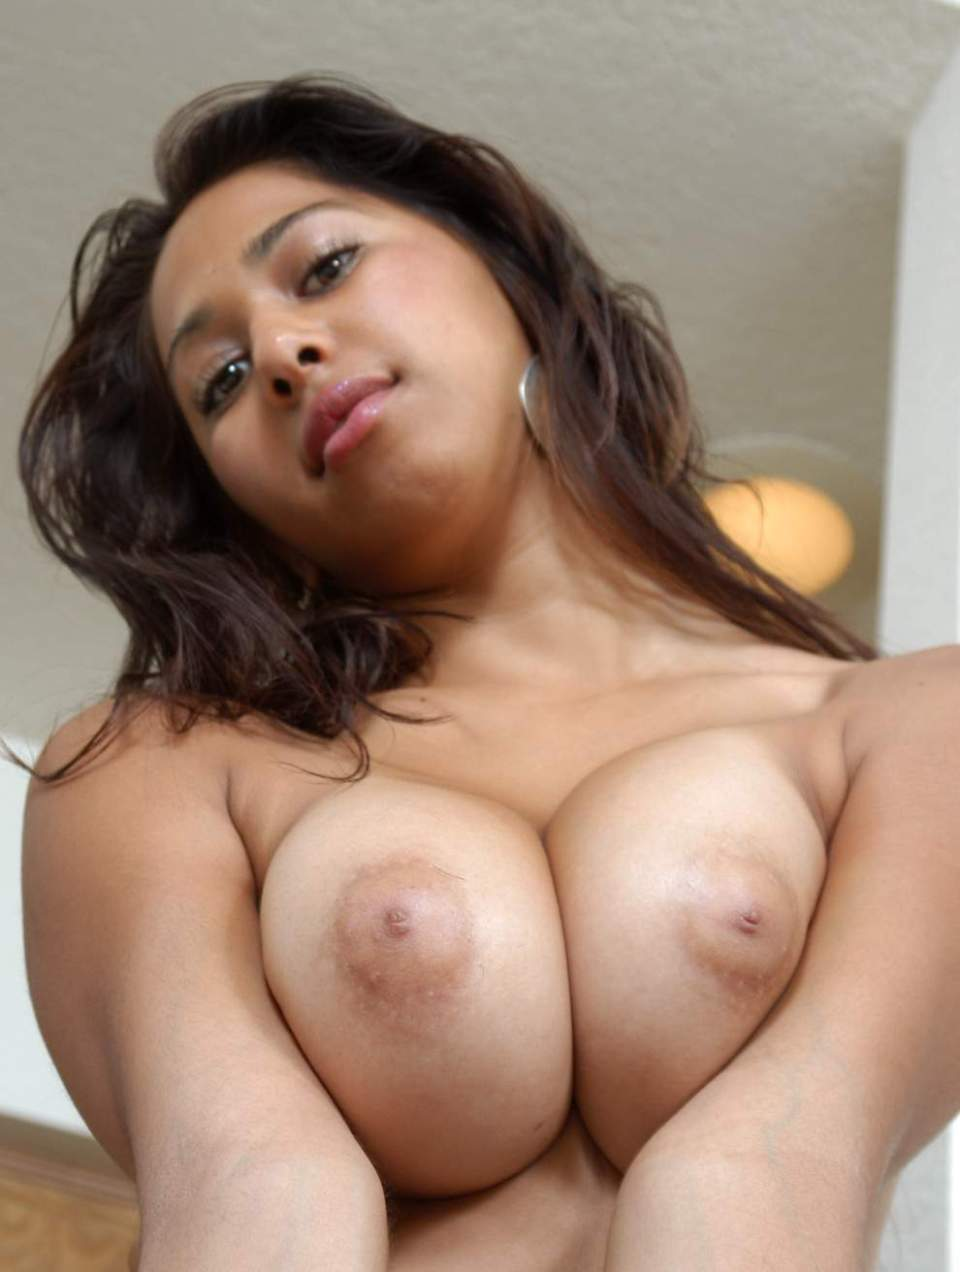 fat women wit nice boobs naked